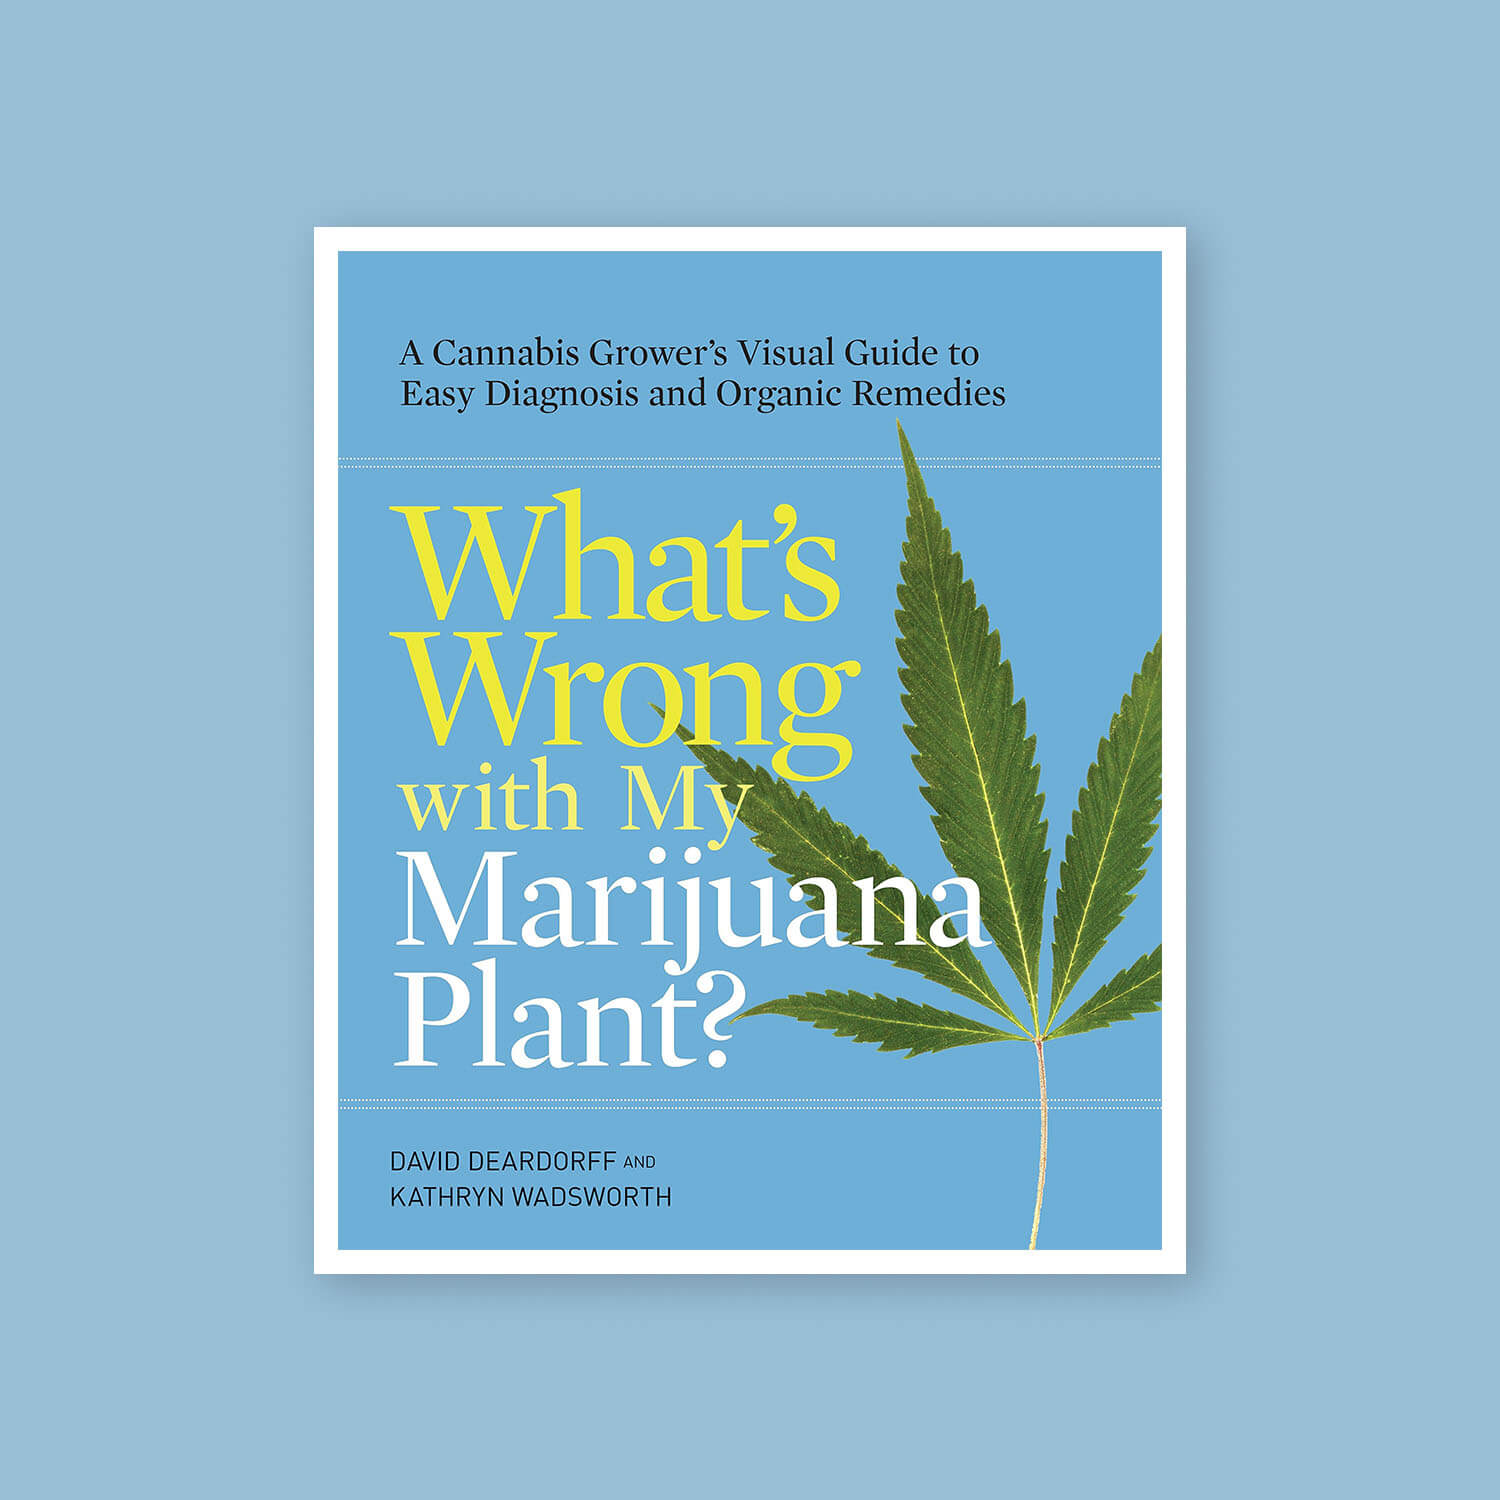 What's wrong with my marijuana plant - Goldleaf bookshelf